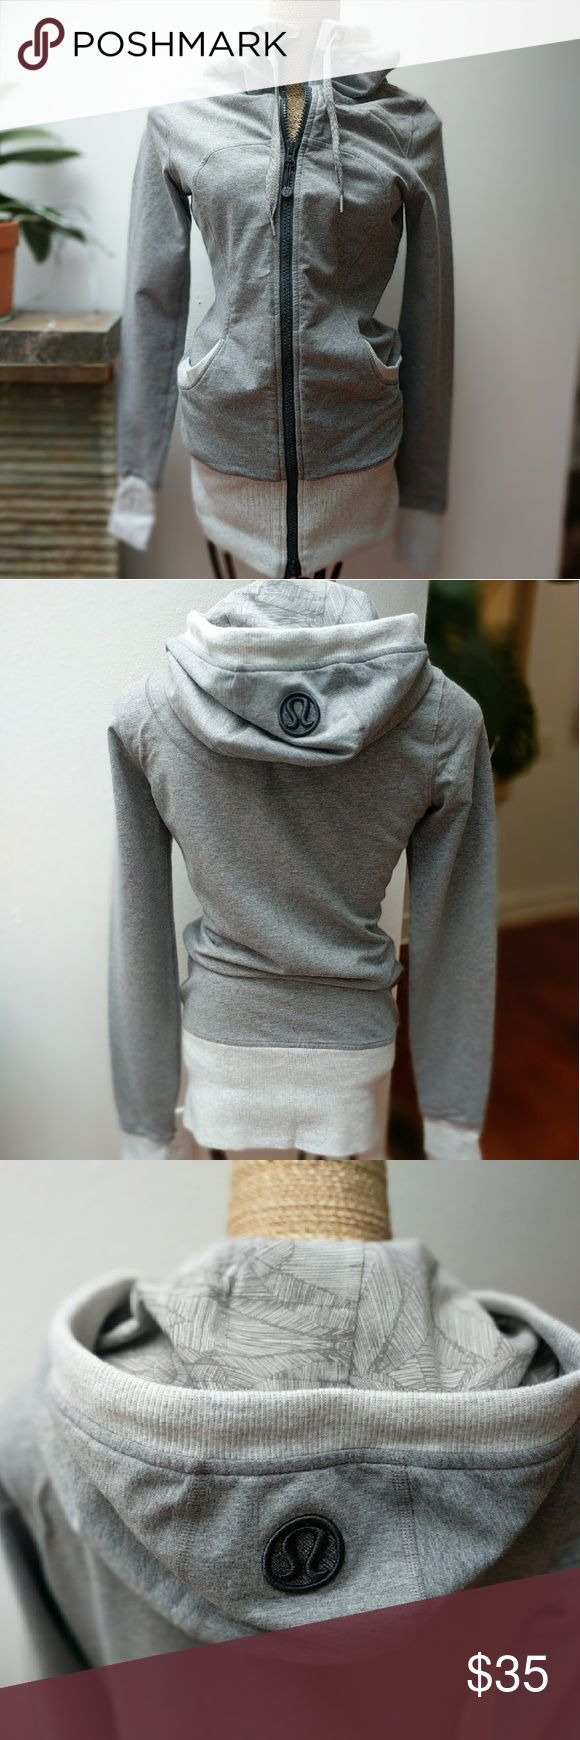 Lululemon hoodie jacket Heather gray with a lined hood. Cozy. Two way zip closure. No signs of wear, no pilling. lululemon athletica Sweaters Cardigans